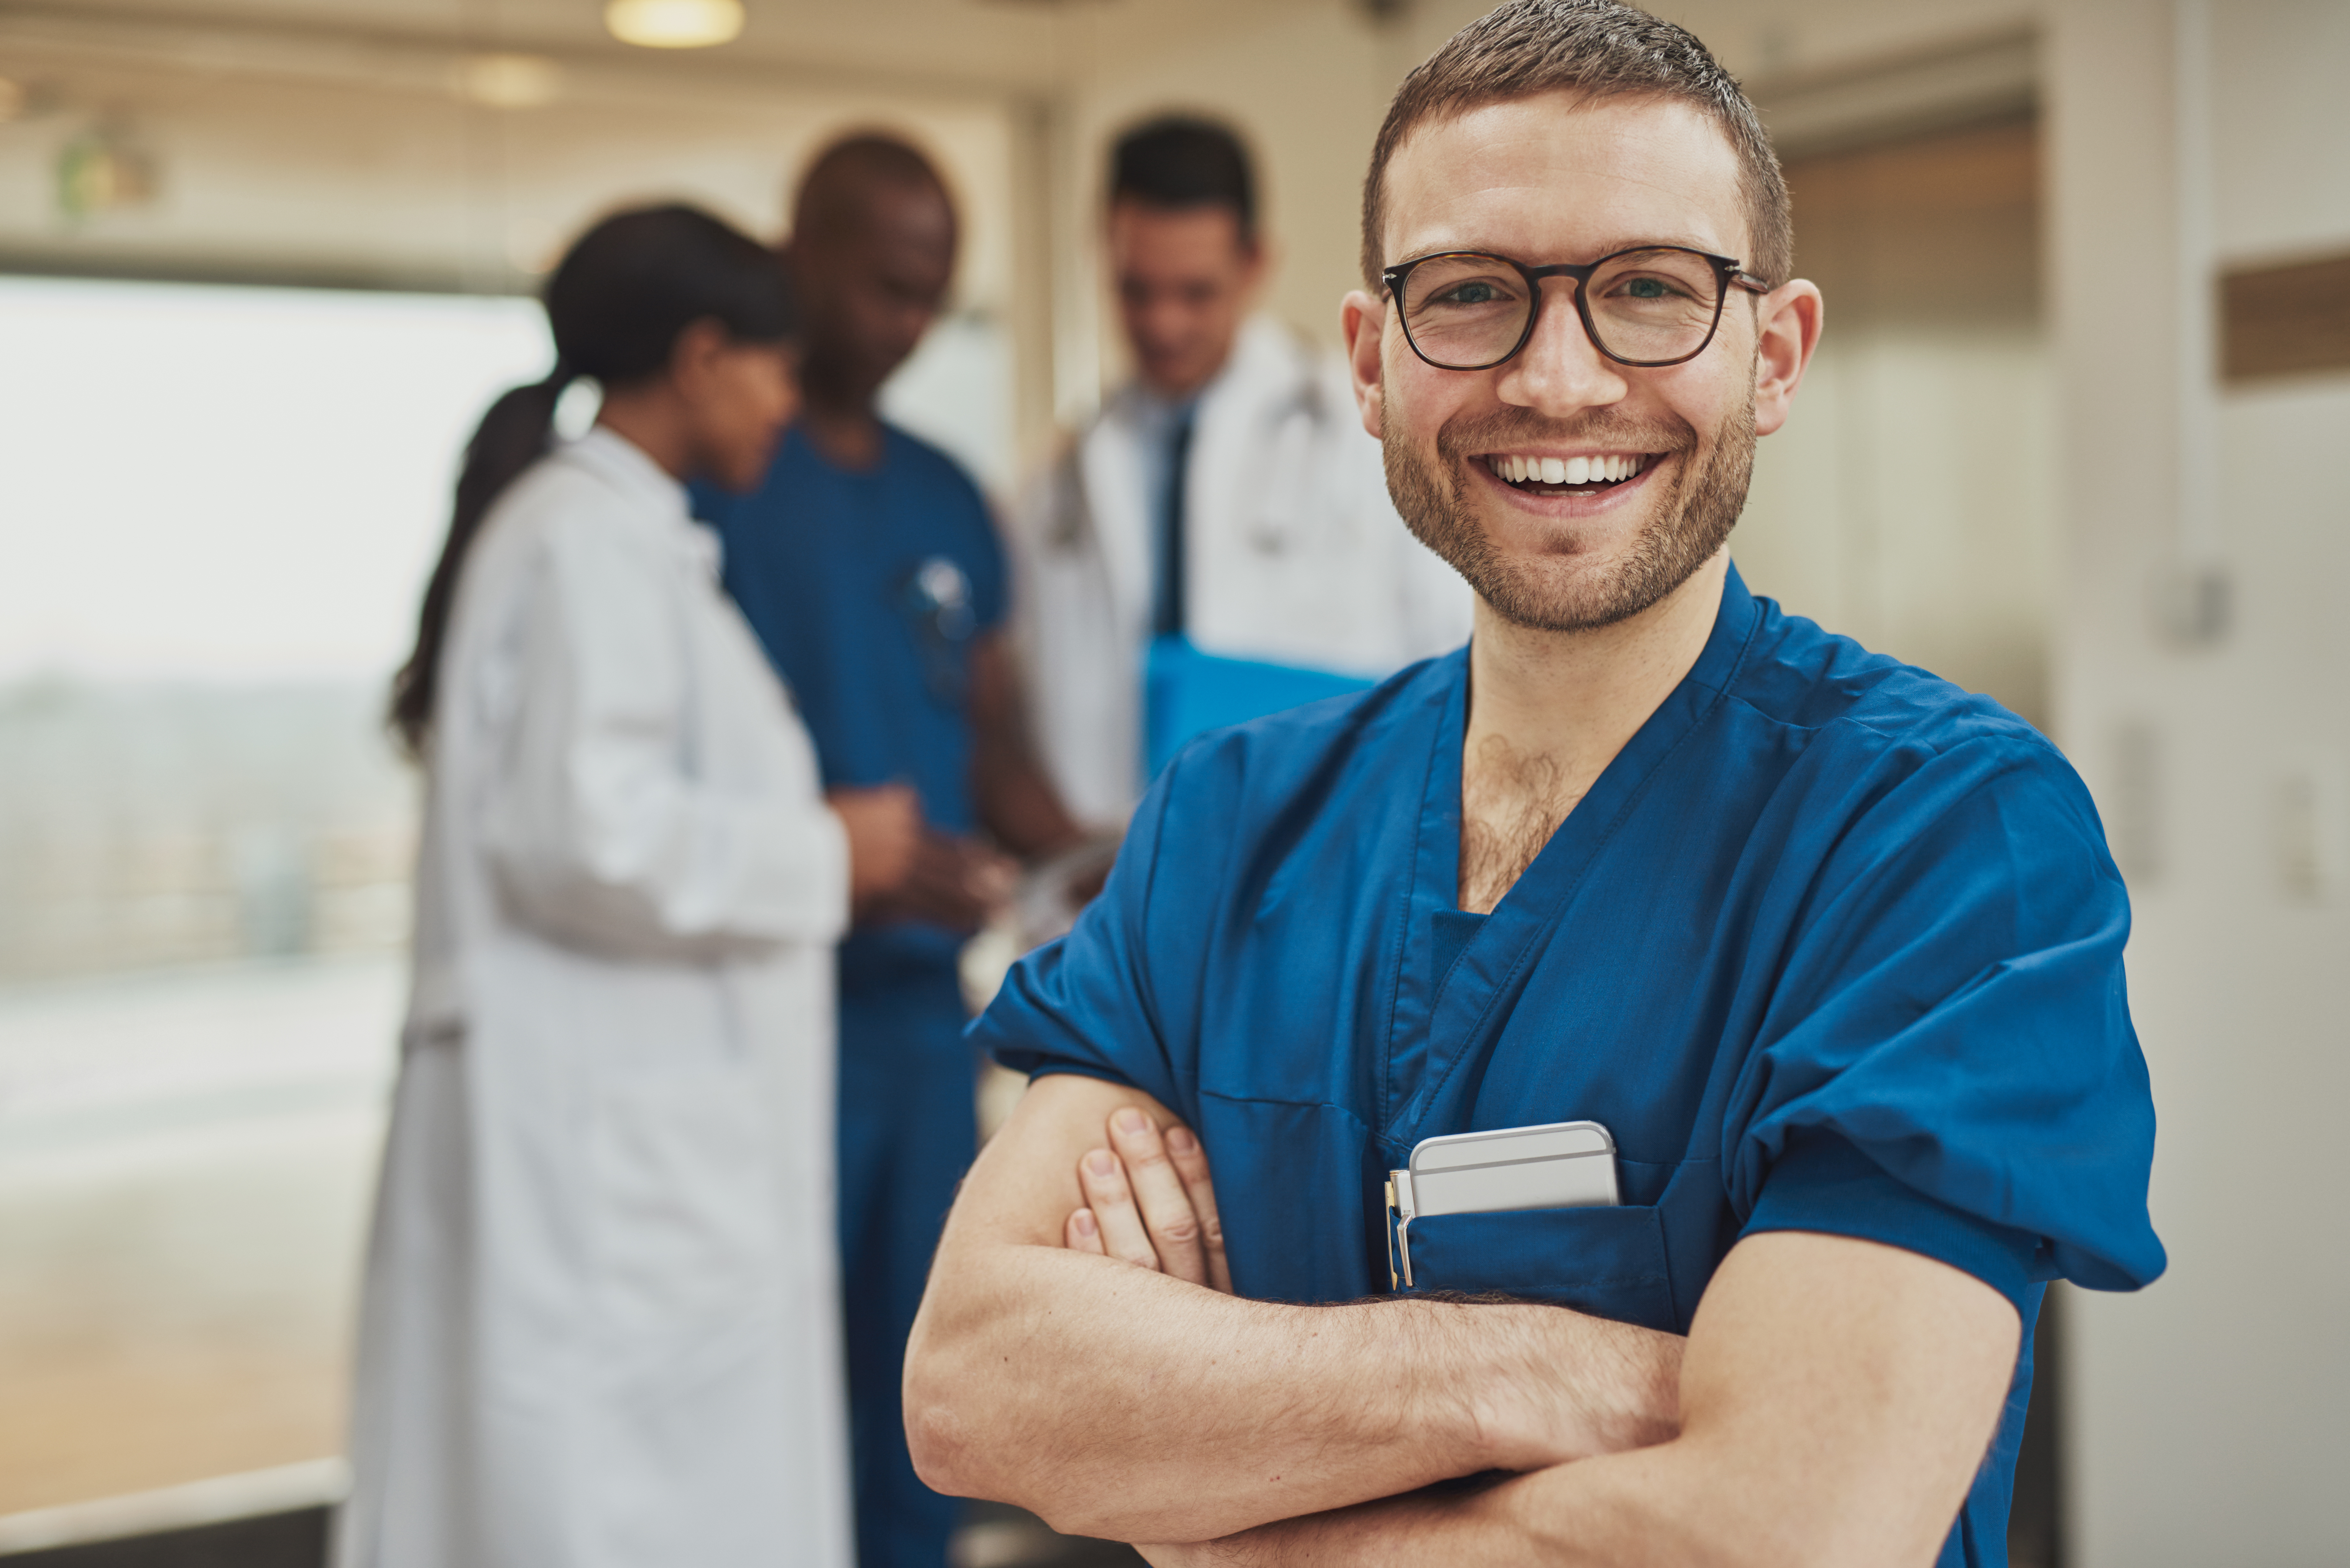 Male nurse standing in front of blurred group of people